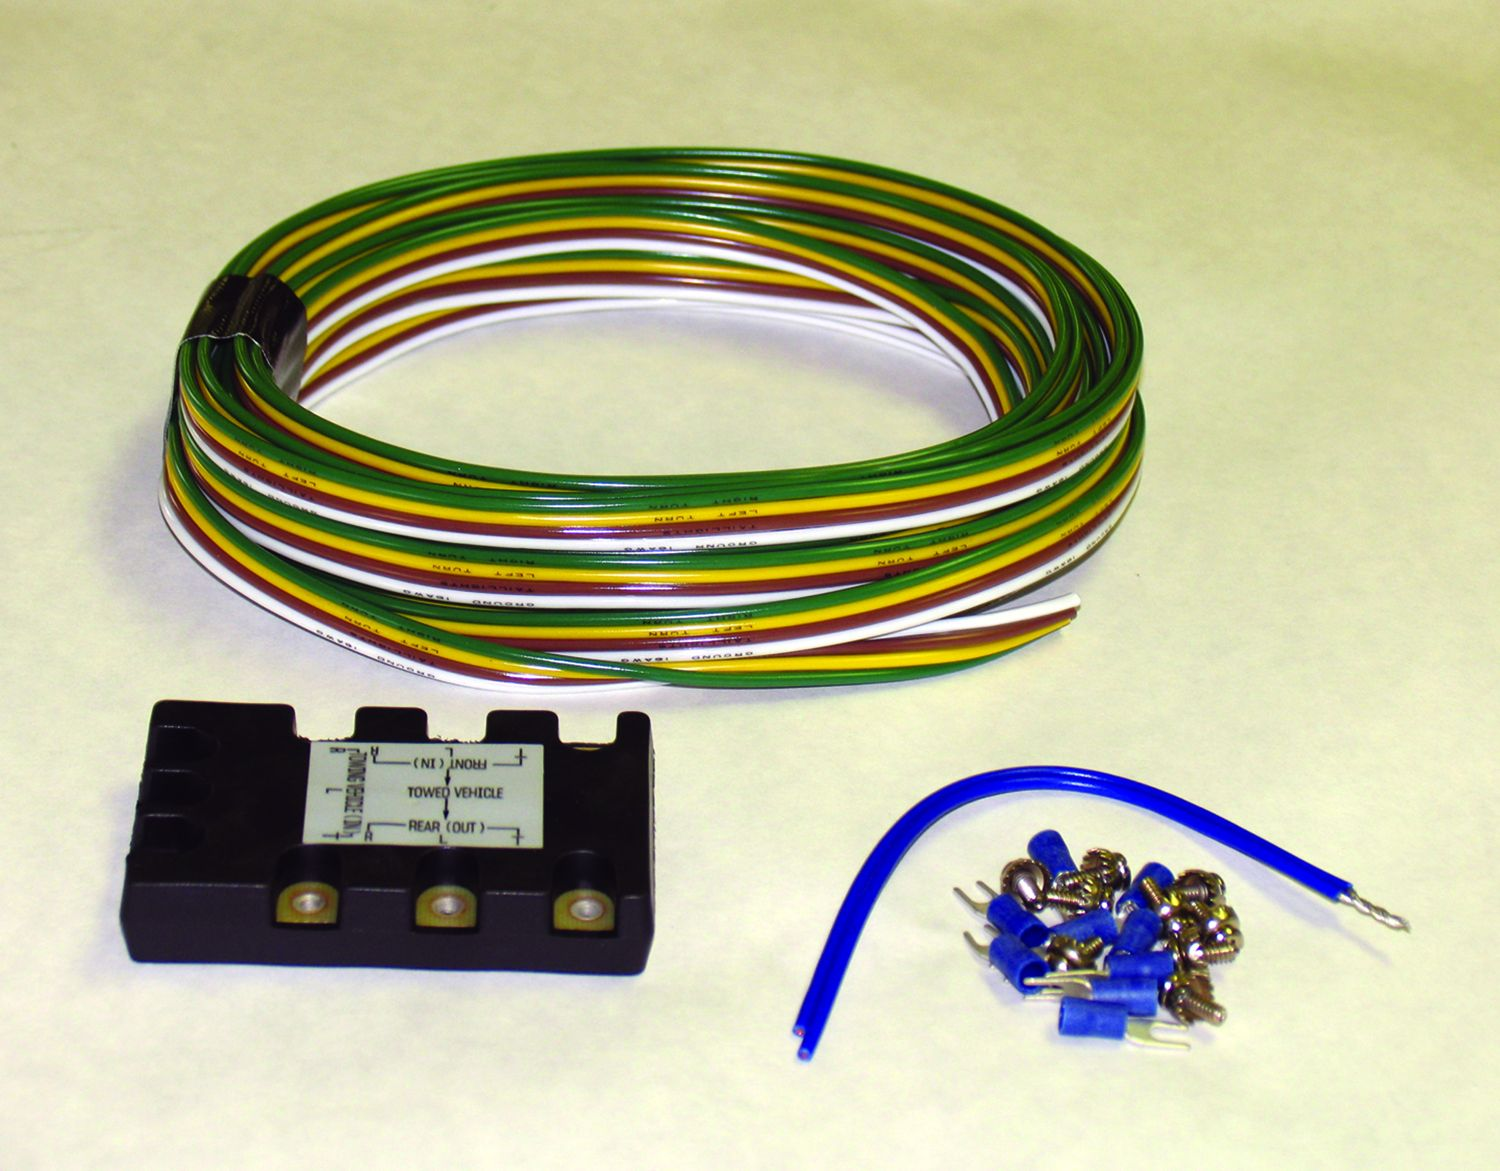 BX8811 Blue Ox Towed Vehicle Wiring Kit Hardwire Diode